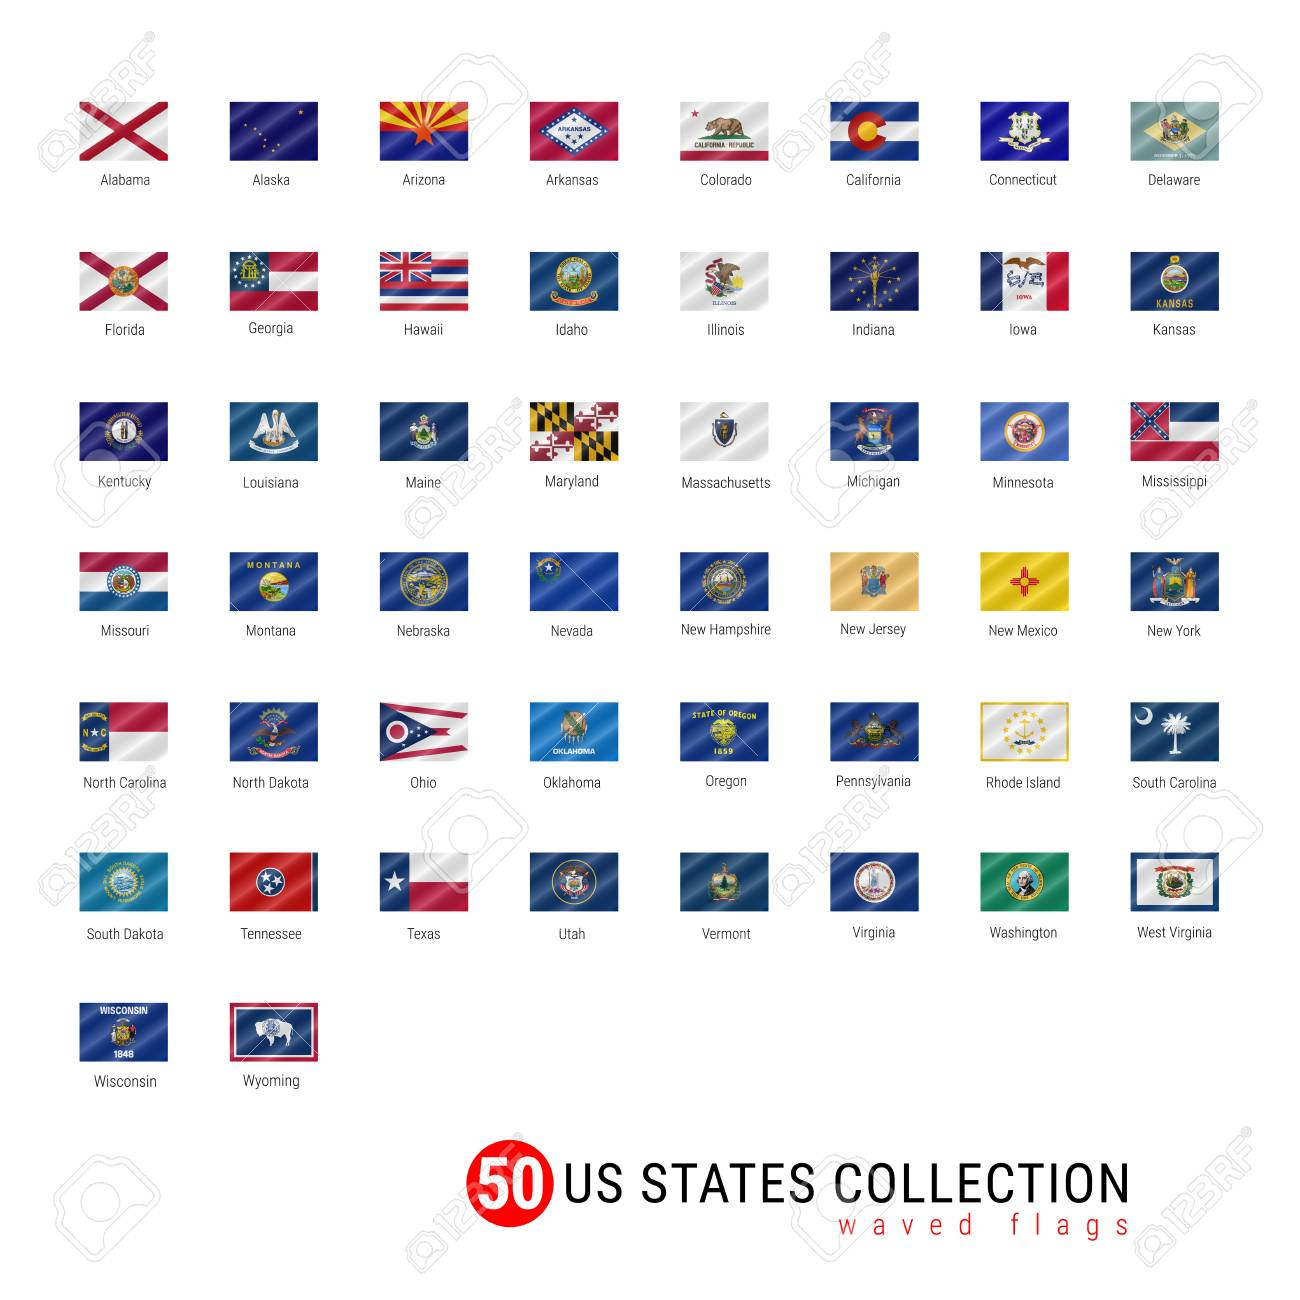 50 US States Vector Flag Set. Official Vector Flags of All 50..  States Flags Pictures on all 50 flags, gallery of sovereign-state flags, midwest state flags, world map with flags, all us flags, official state flags, south west region state flags, all state flags, violent lips flags, american state flags, german state flags, southern state flags, australian state flags, country flags, caribbean flags, us state flags, individual state flags, france state flags, color of state flags,